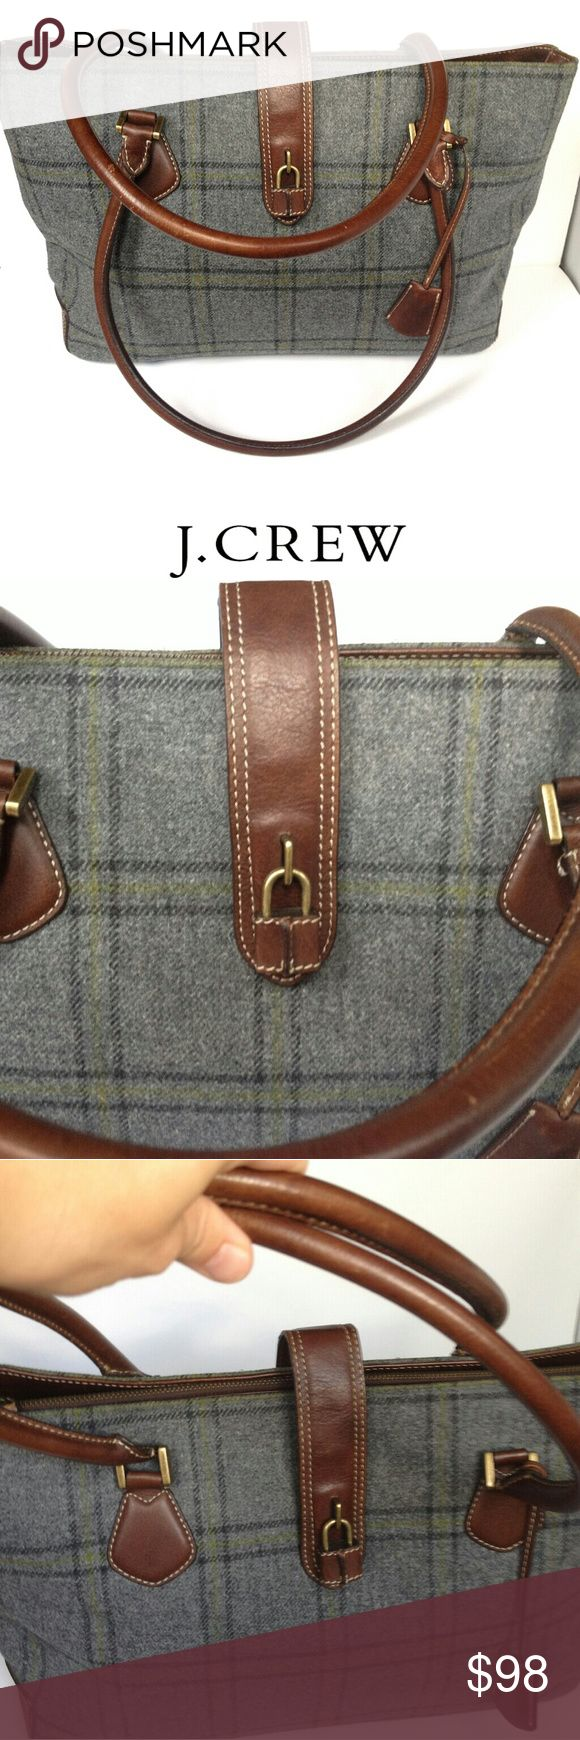 """J Crew Bag/Handbag/Purse Leather+Wool Tote Condition: pre-owned like New. Material: 100% wool+100% leather. Measurements: length 15"""", width 11"""", depth 4"""", strap drop 10"""". Smoke free+pet free. Color: grey check+ brown leather. J. Crew Bags Totes"""